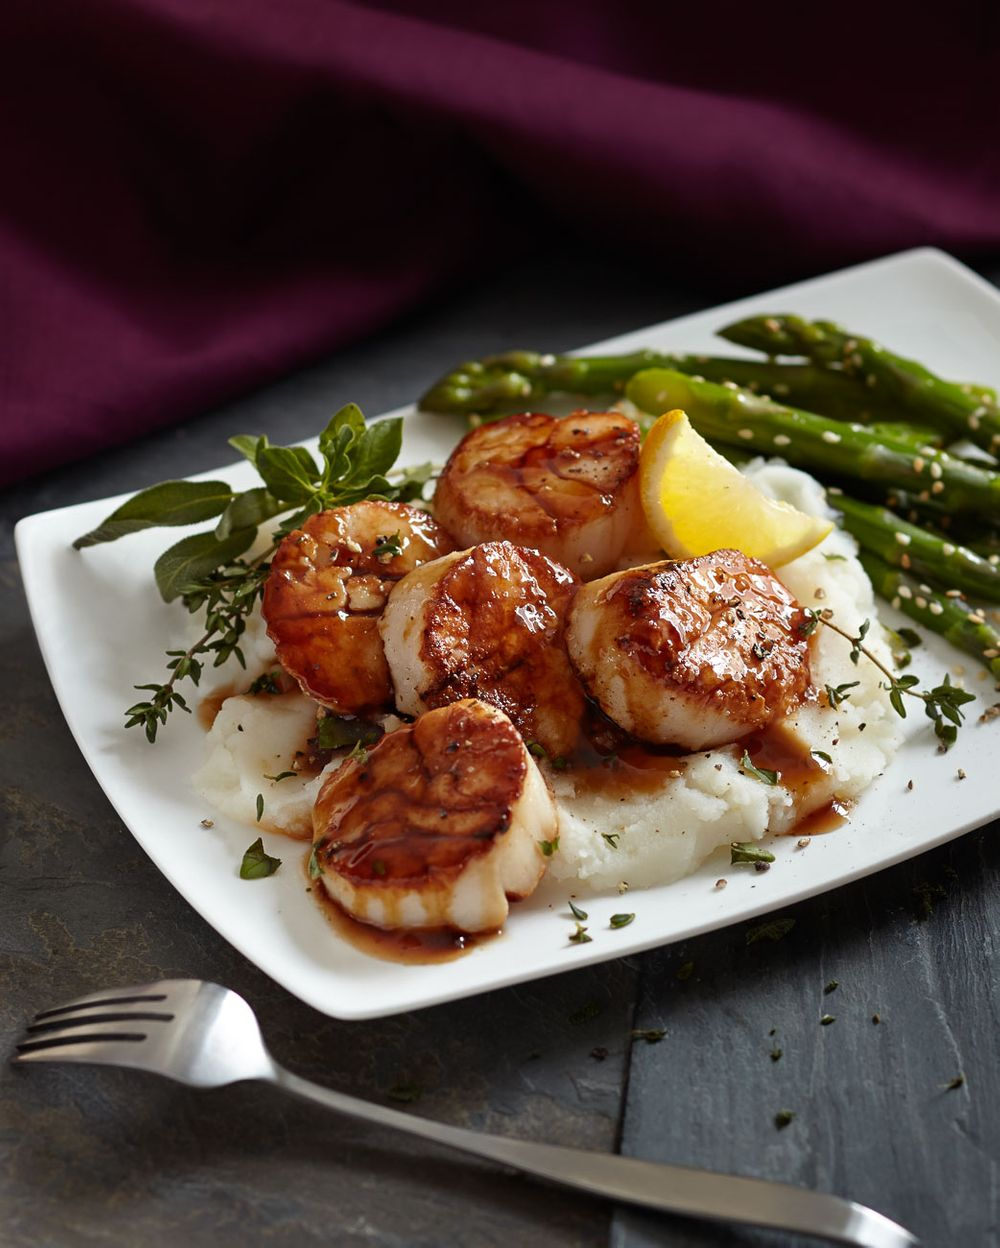 Scallops mashed potatoes and asparagus